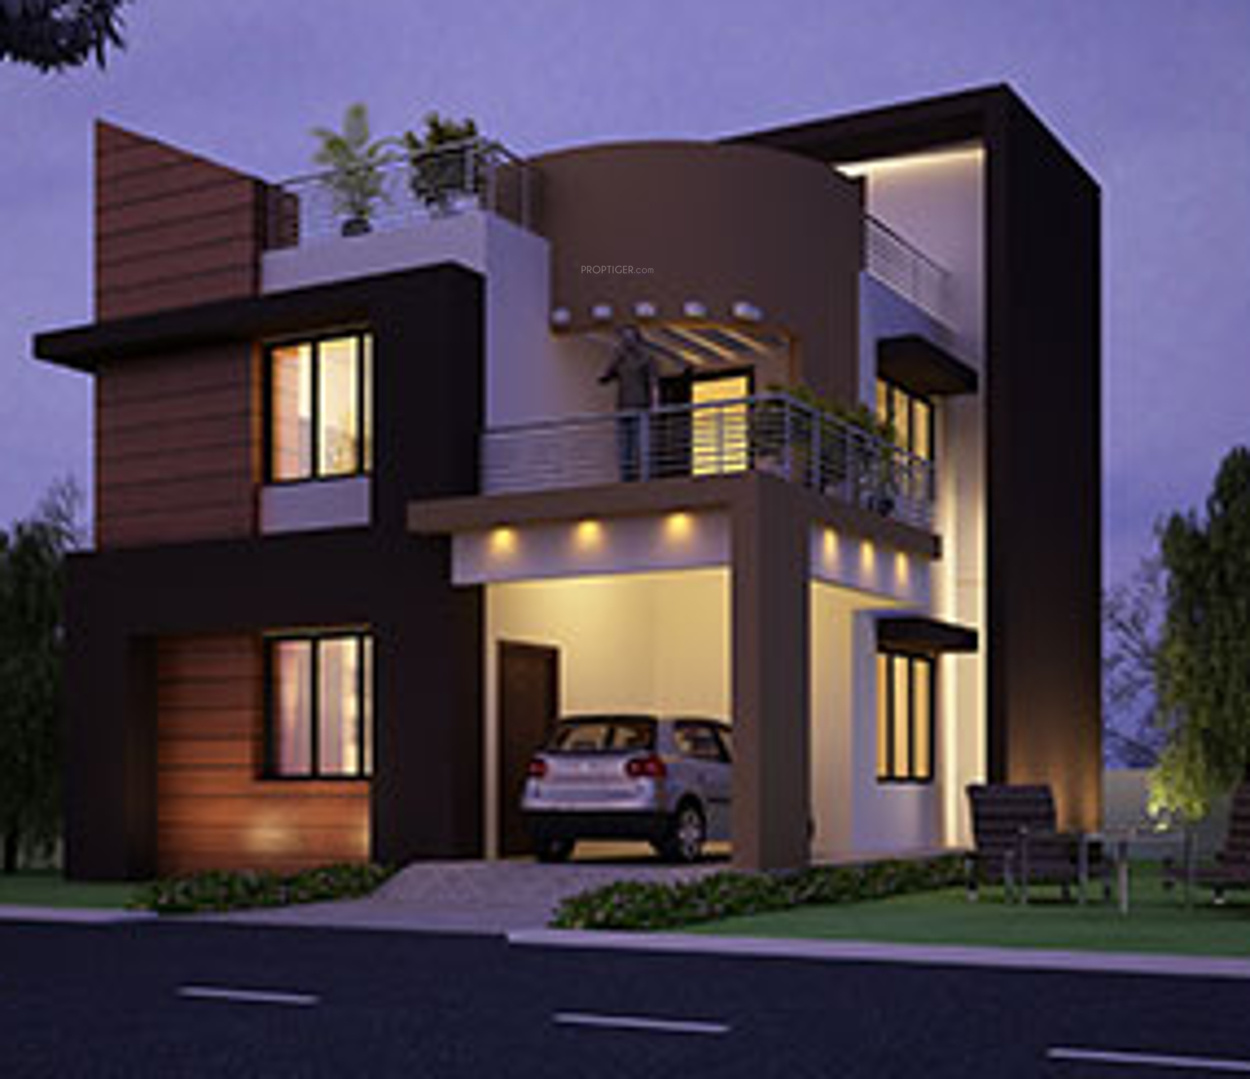 Front Elevation Designs 24 Feet Wide : Site plan image of fortune infra properties home patia